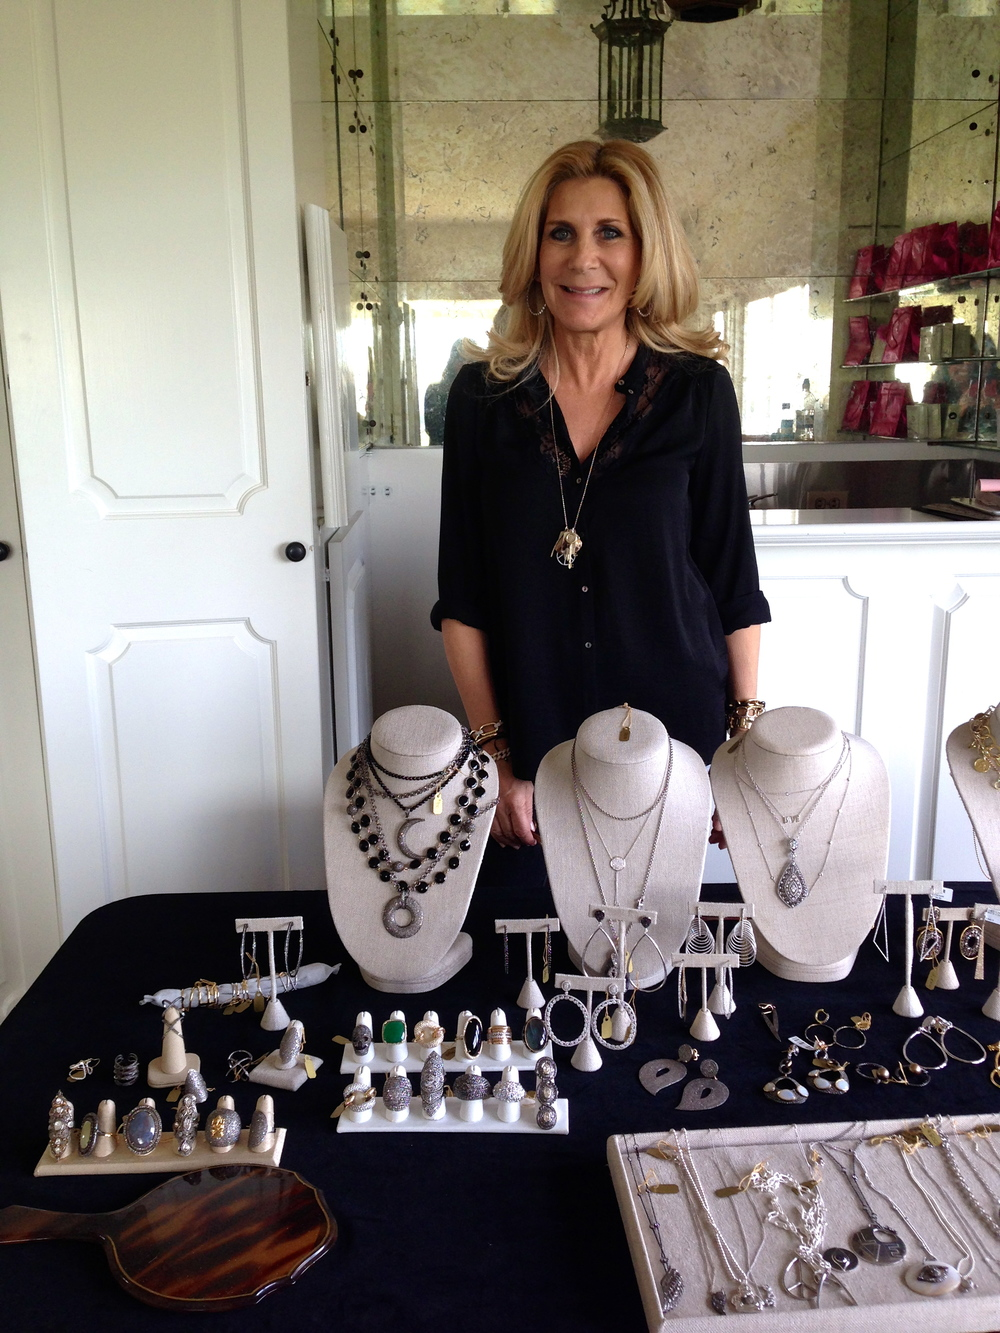 Kelly Gerber behind her fab jewels at the trunk show hosted at my home in Bel Air.